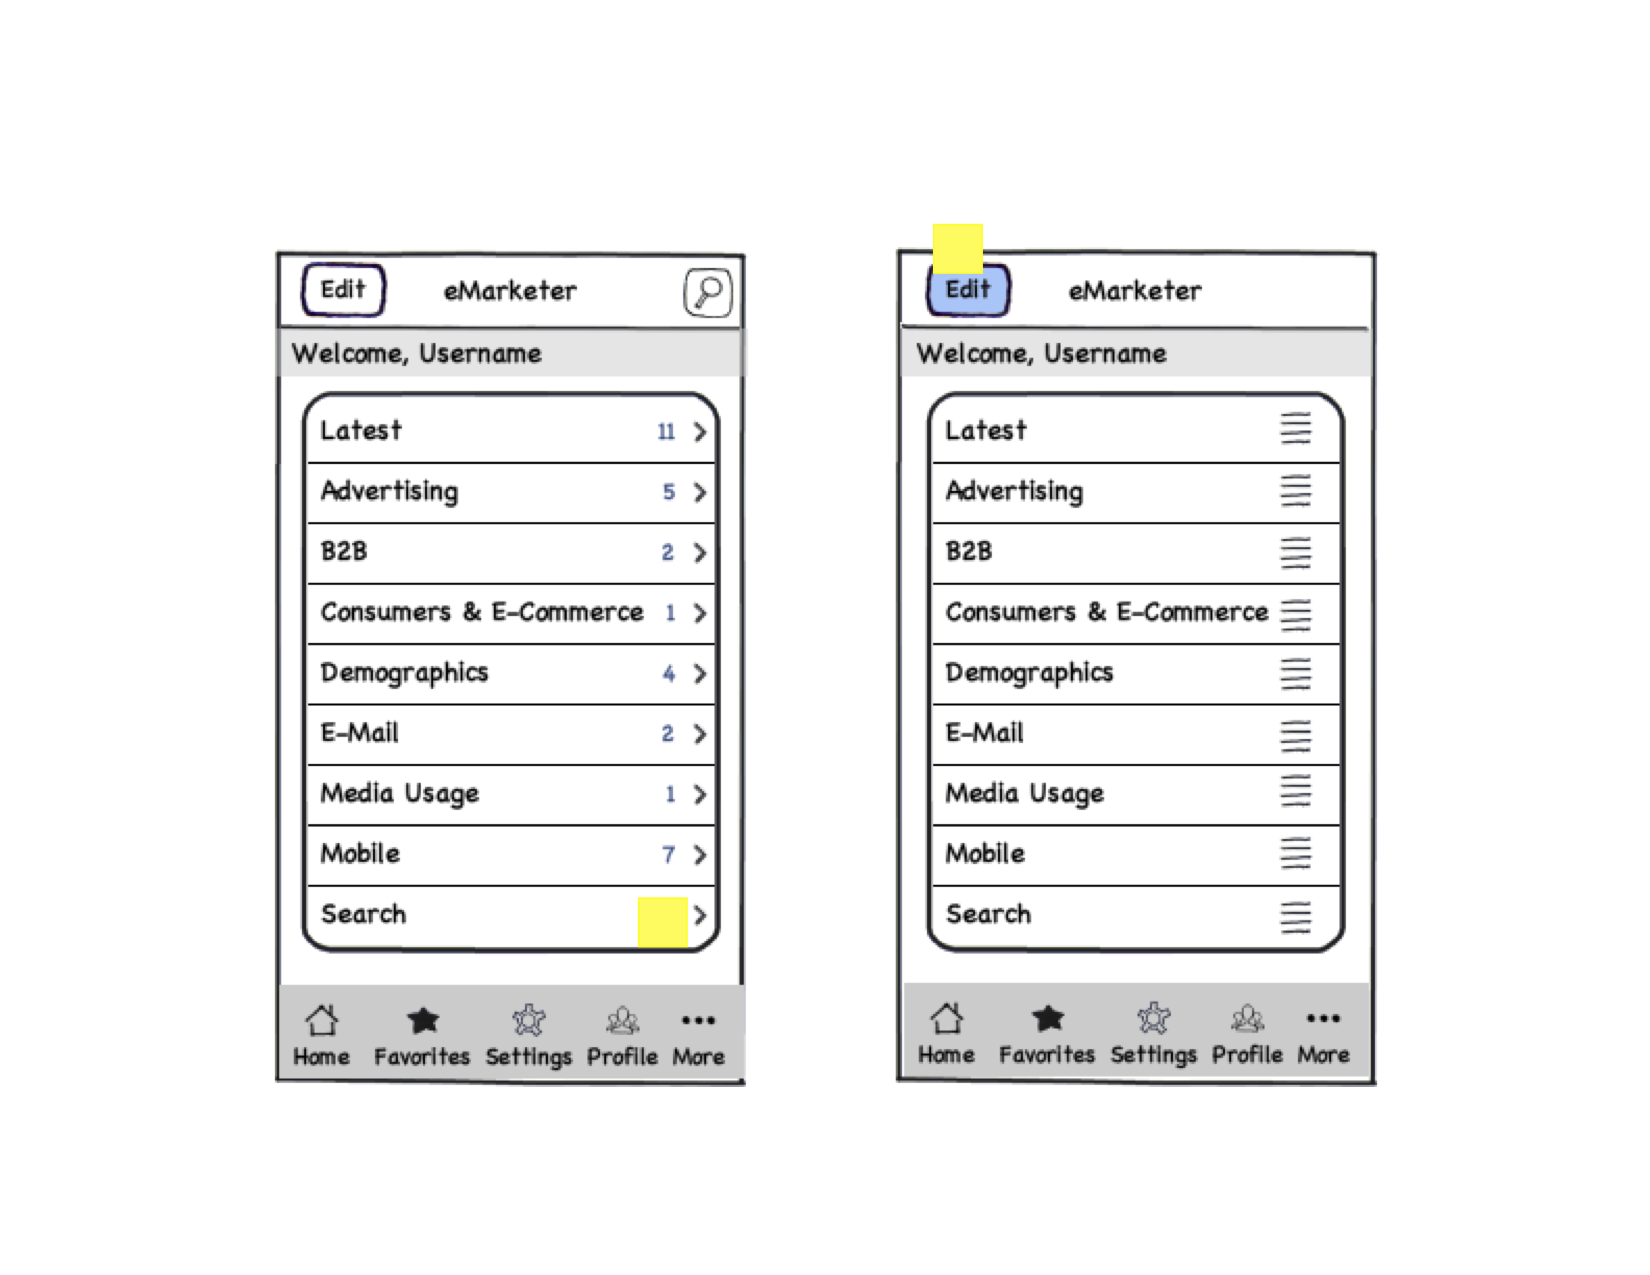 emarketer_iphone_wireframes_v1.2_patrick_1.png